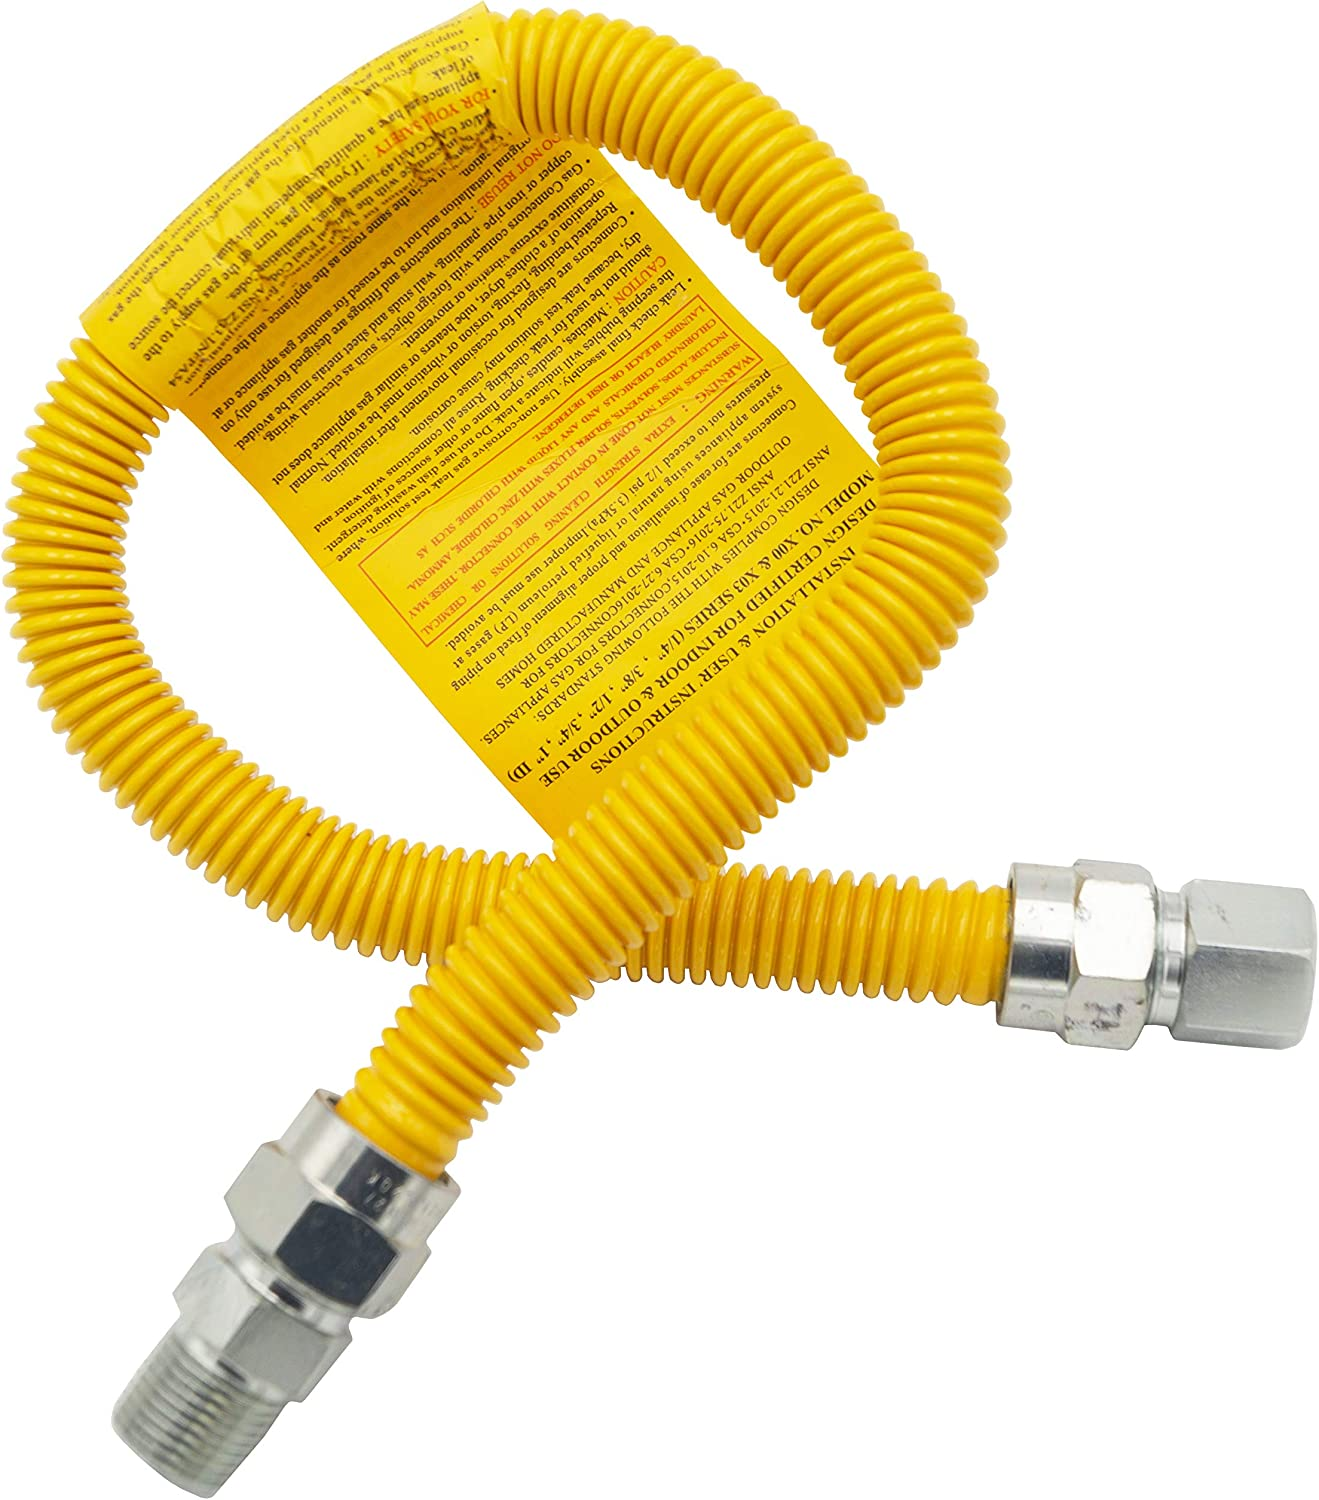 Supplying Demand 303-3132-24 Range Oven Spring new work Gas 2021 autumn and winter new Hose 2 OD 5 8 ID 1